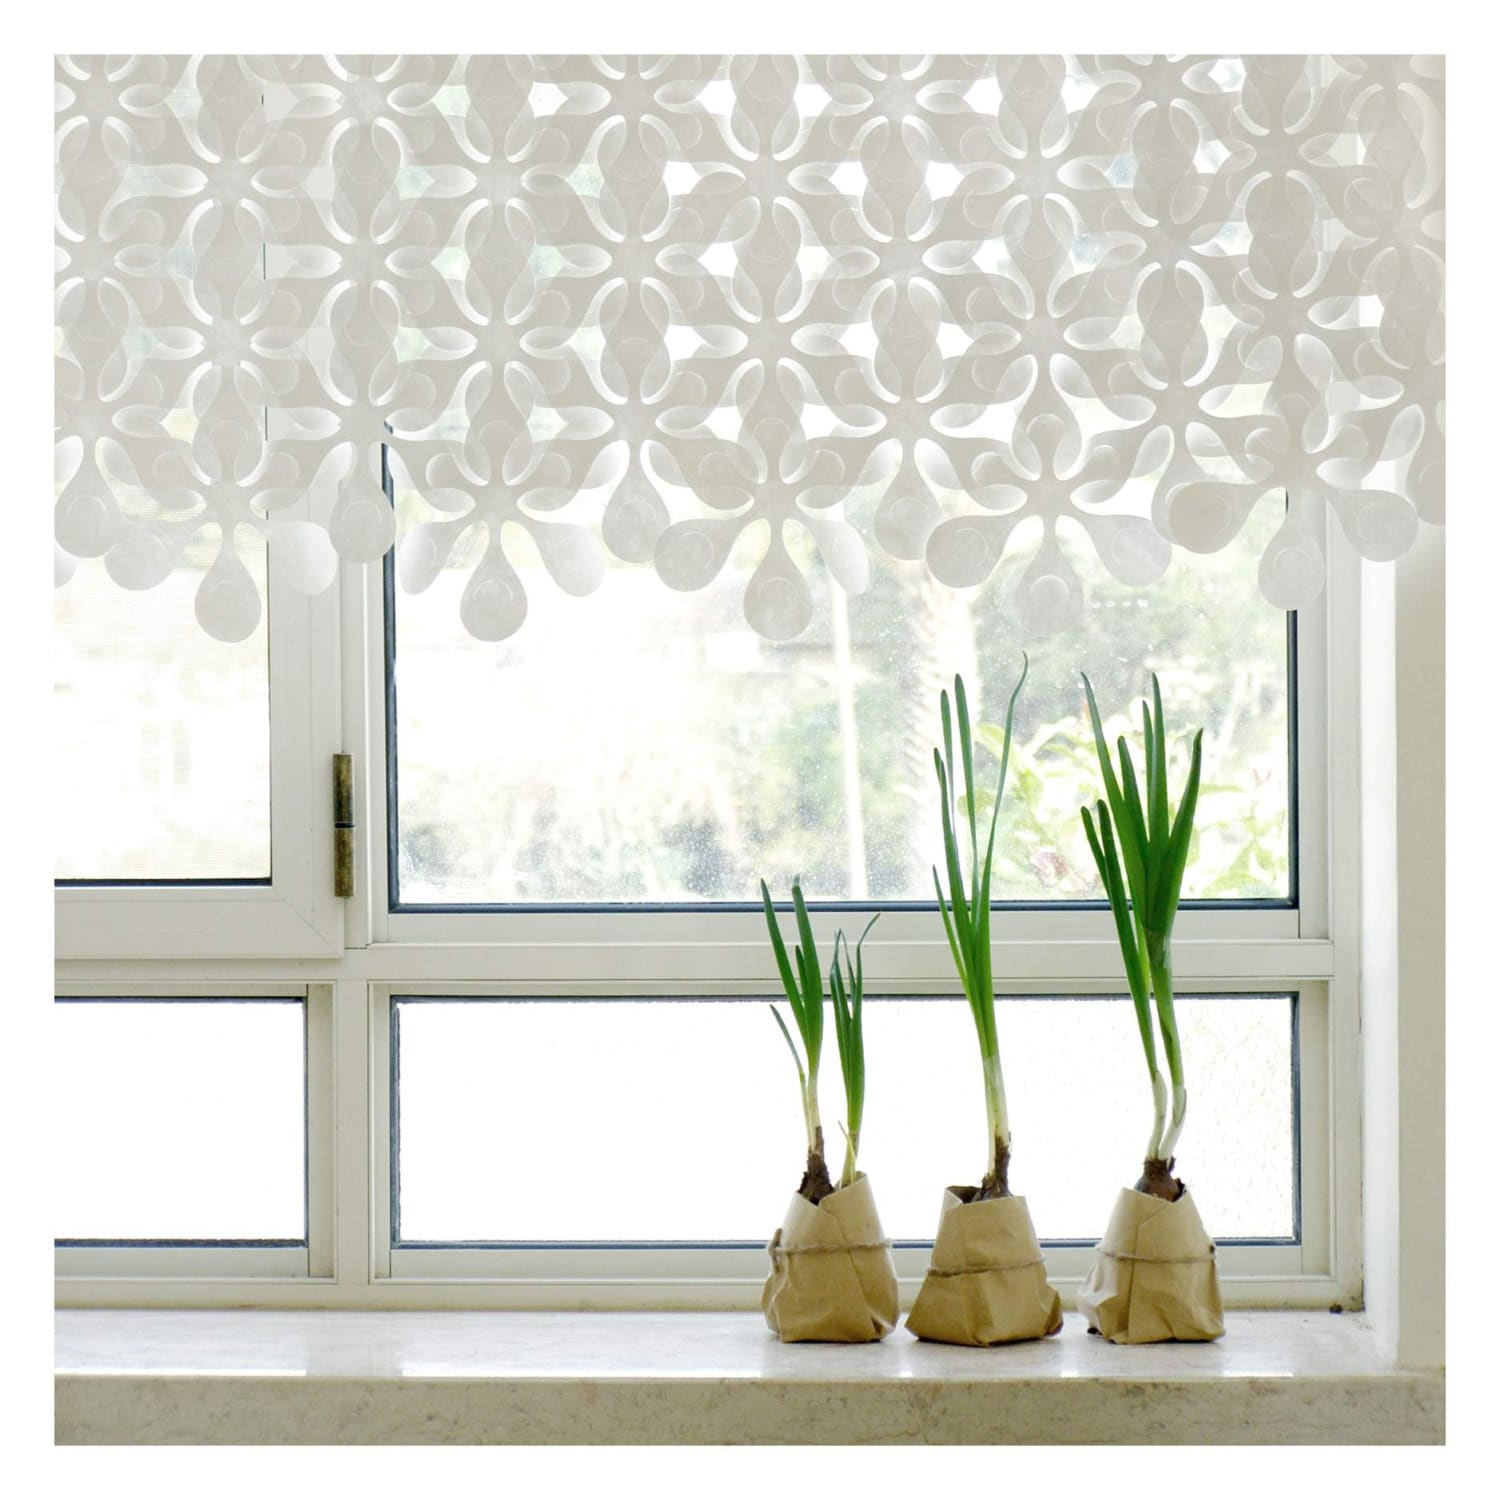 Floral Paper Curtains Window Covering Wall Hanging By